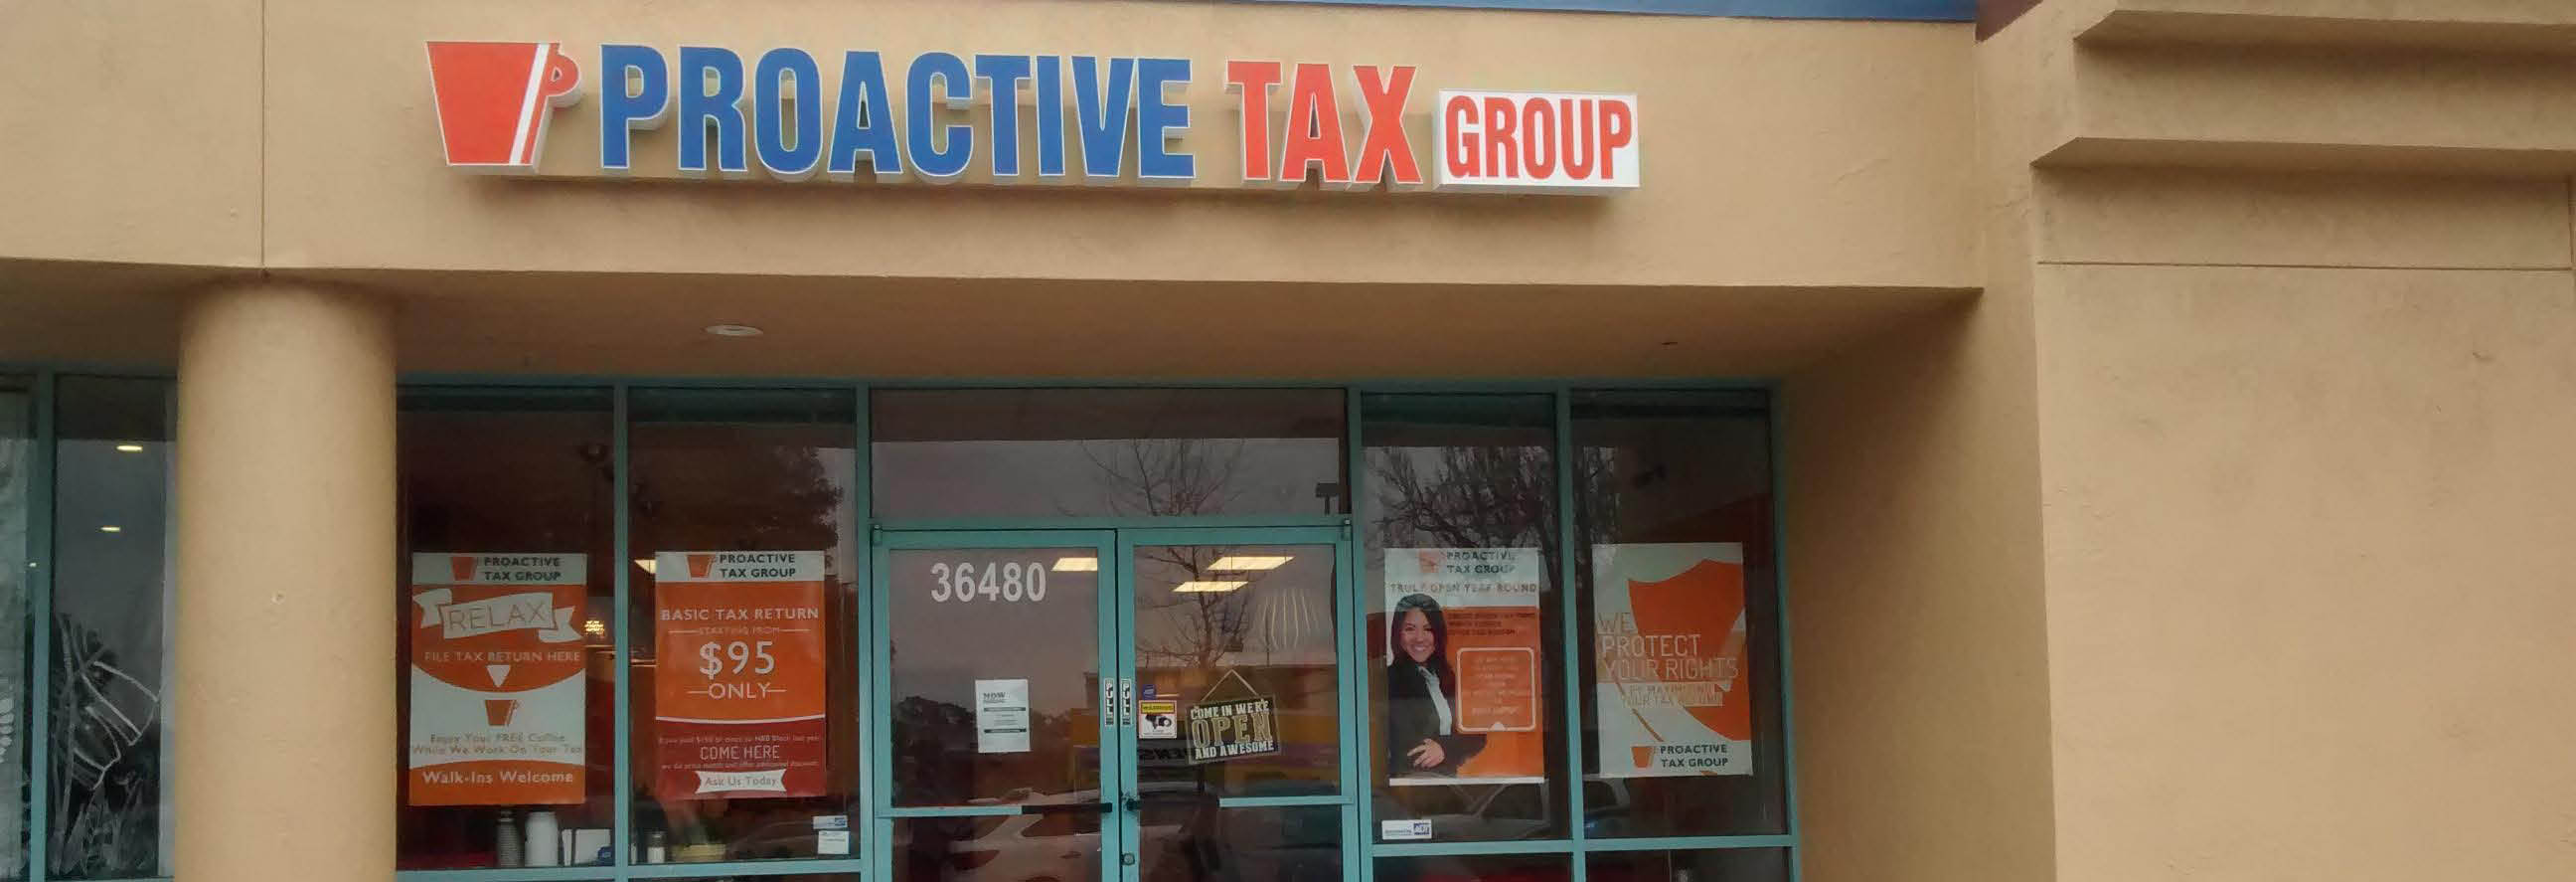 proactive tax group banner